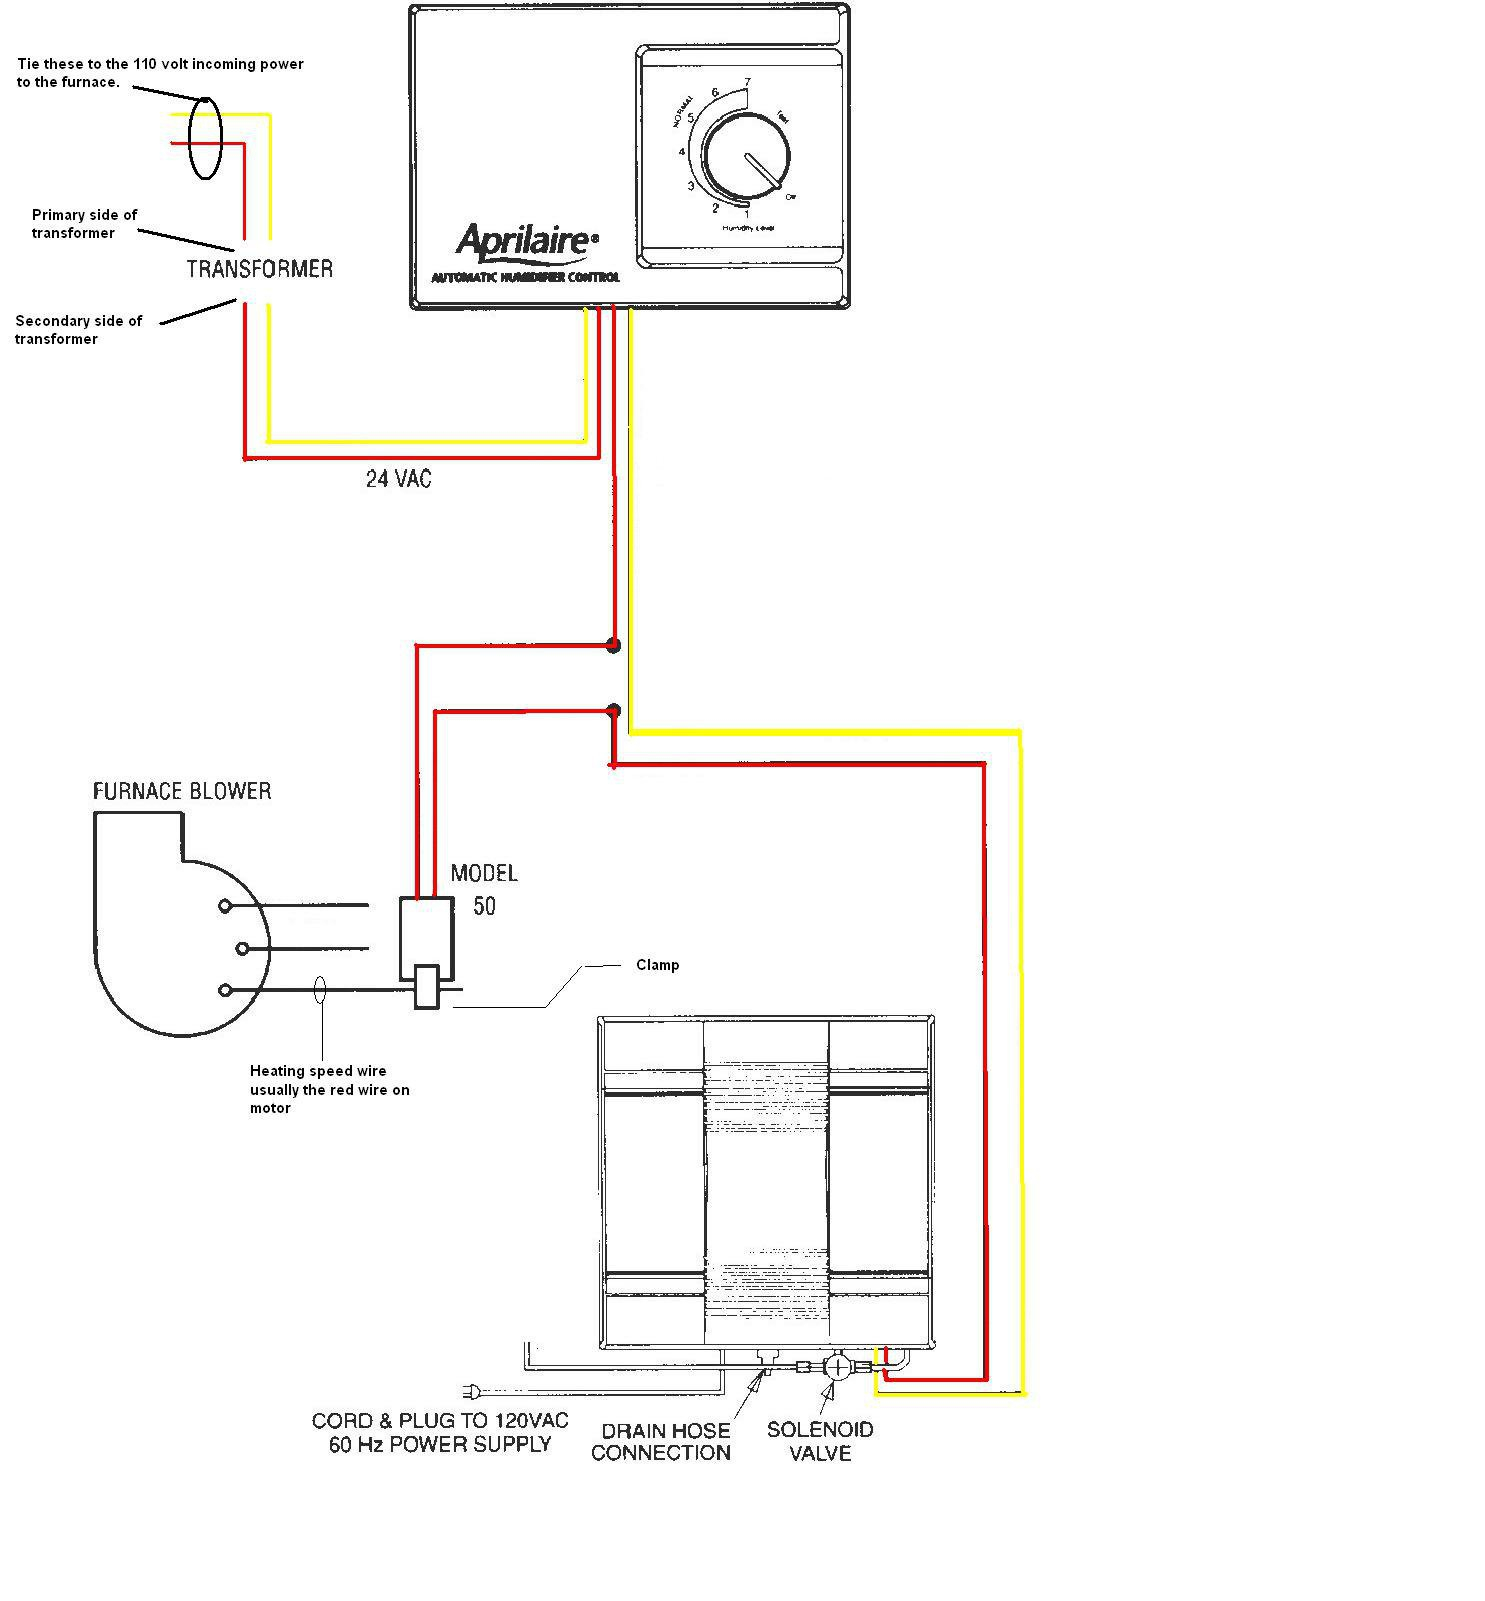 honeywell humidifier wiring diagram Collection-Ecobee Wiring Diagram Fresh Ecobee Wiring Diagram Beautiful Best Honeywell Humidifier Wiring 8-r